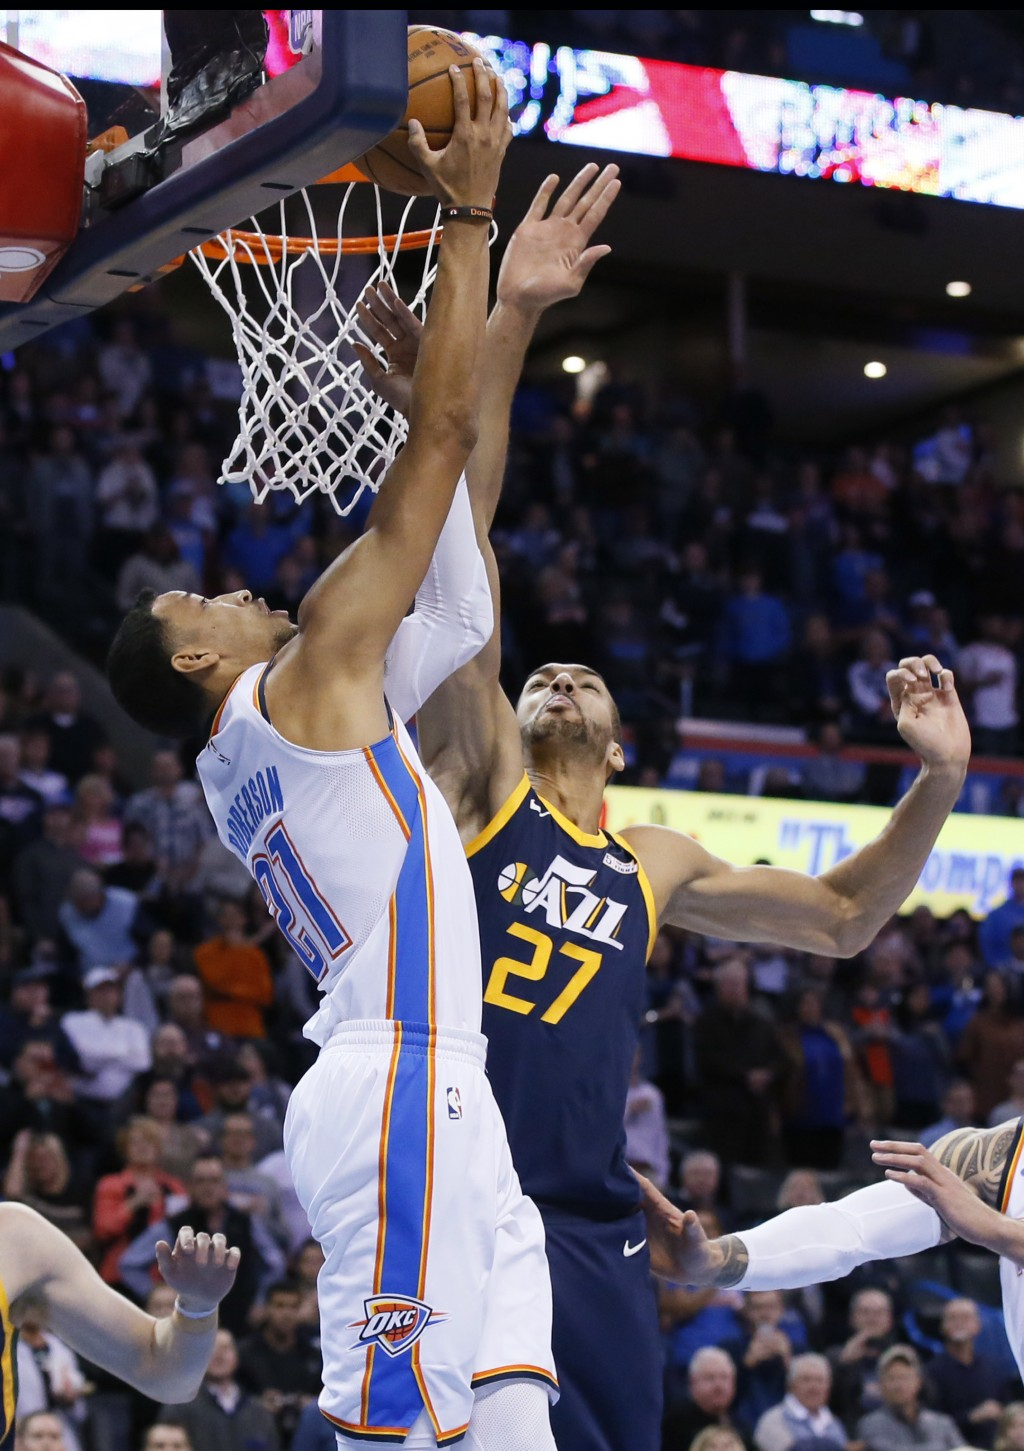 Oklahoma City Thunder guard Andre Roberson (21) shoots in front of Utah Jazz center Rudy Gobert (27) in the first quarter of an NBA basketball game in